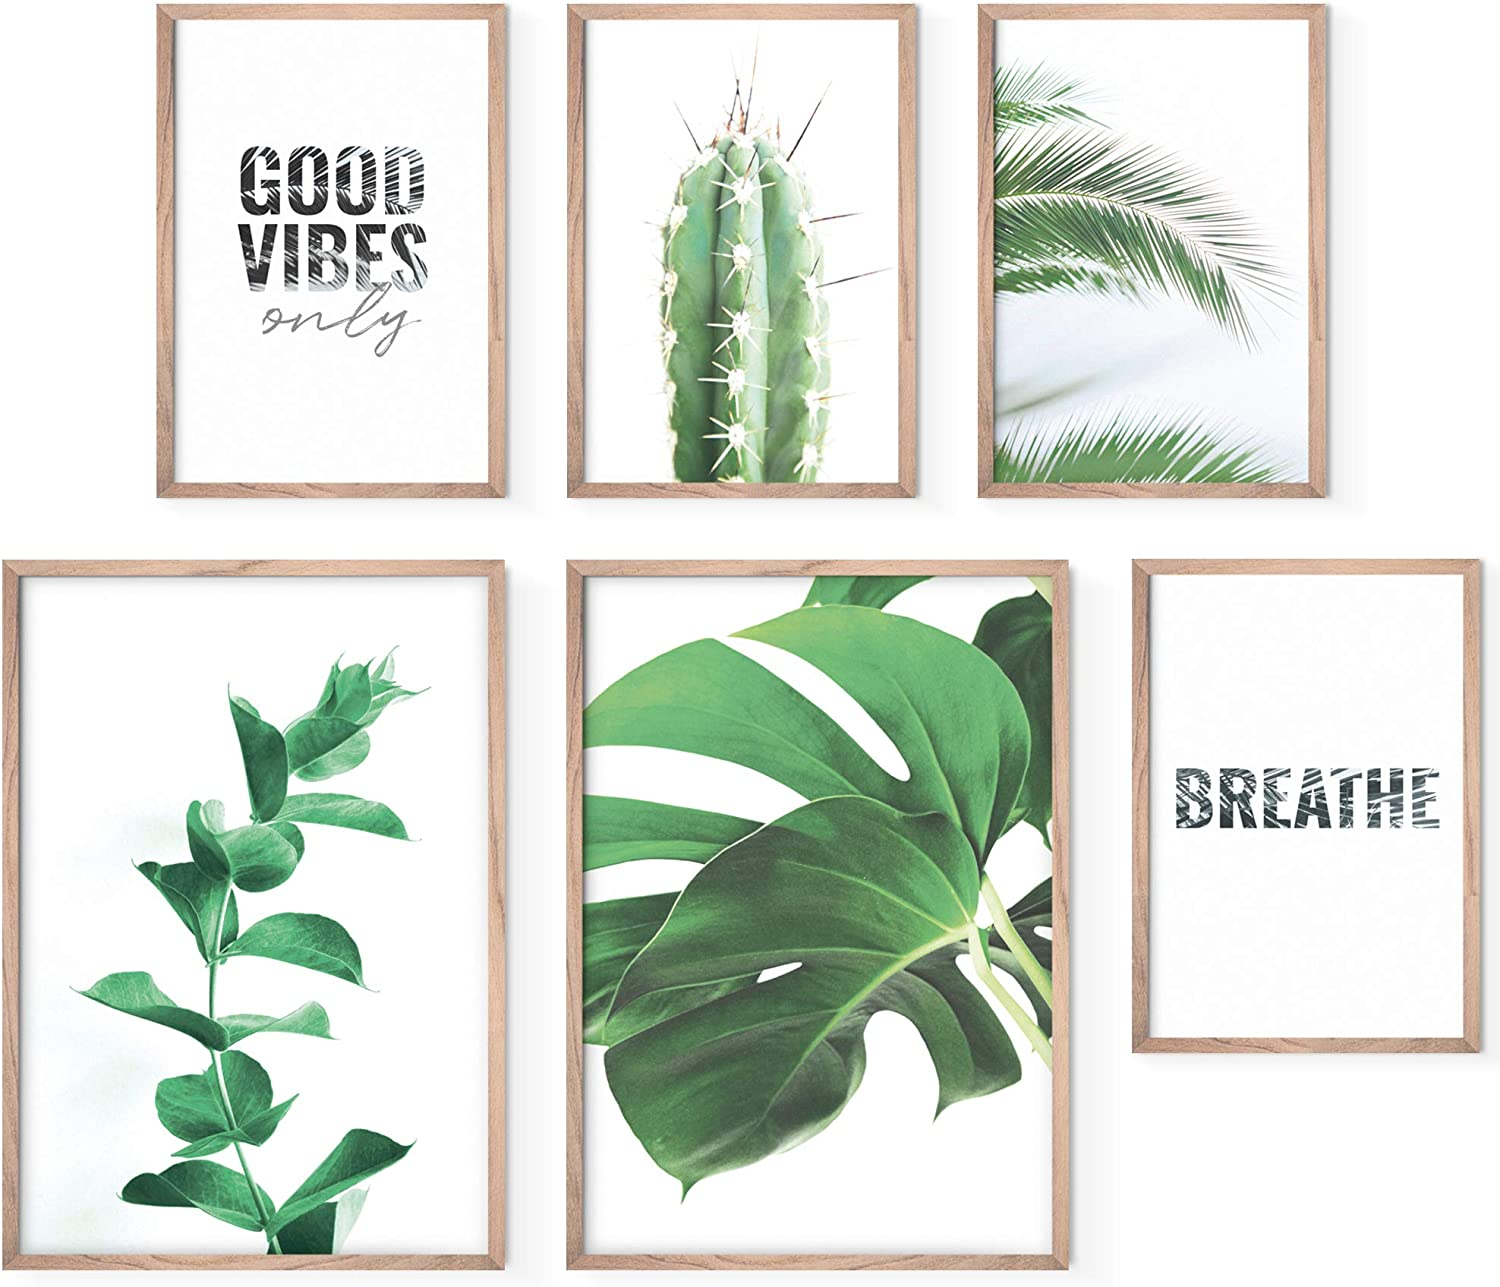 Bold Design Aesthetic Posters Set - Stylish Photo and Quote Prints - 6 Unframed Plant Wall Art Pictures - 2x 17x11; 4x 11x8 - Wall Posters & Prints for Home or Office - Posters for Living Room